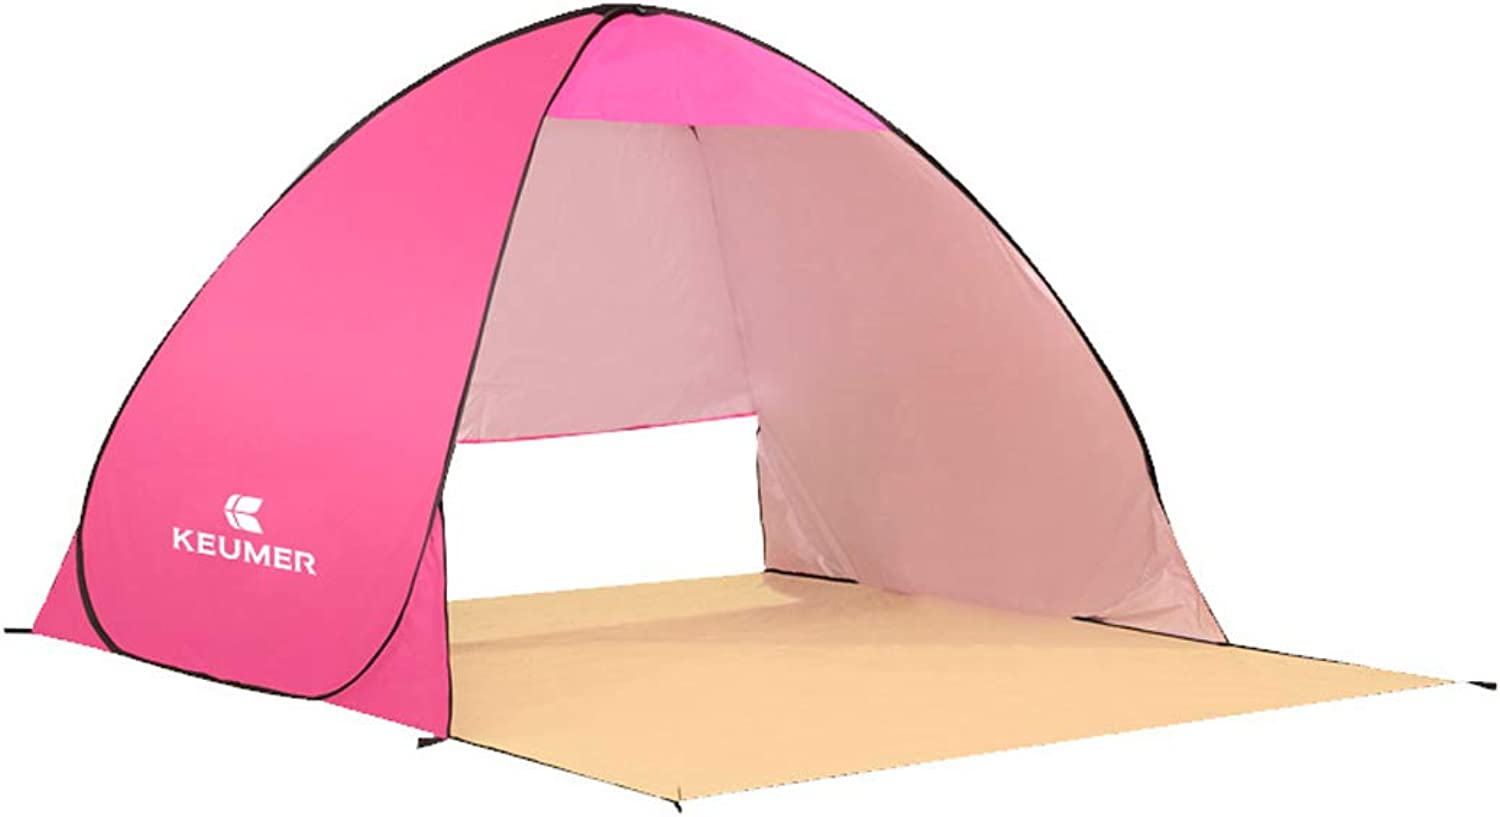 Yurts, Tents, Simple, Beach Install to Easy Lightweight